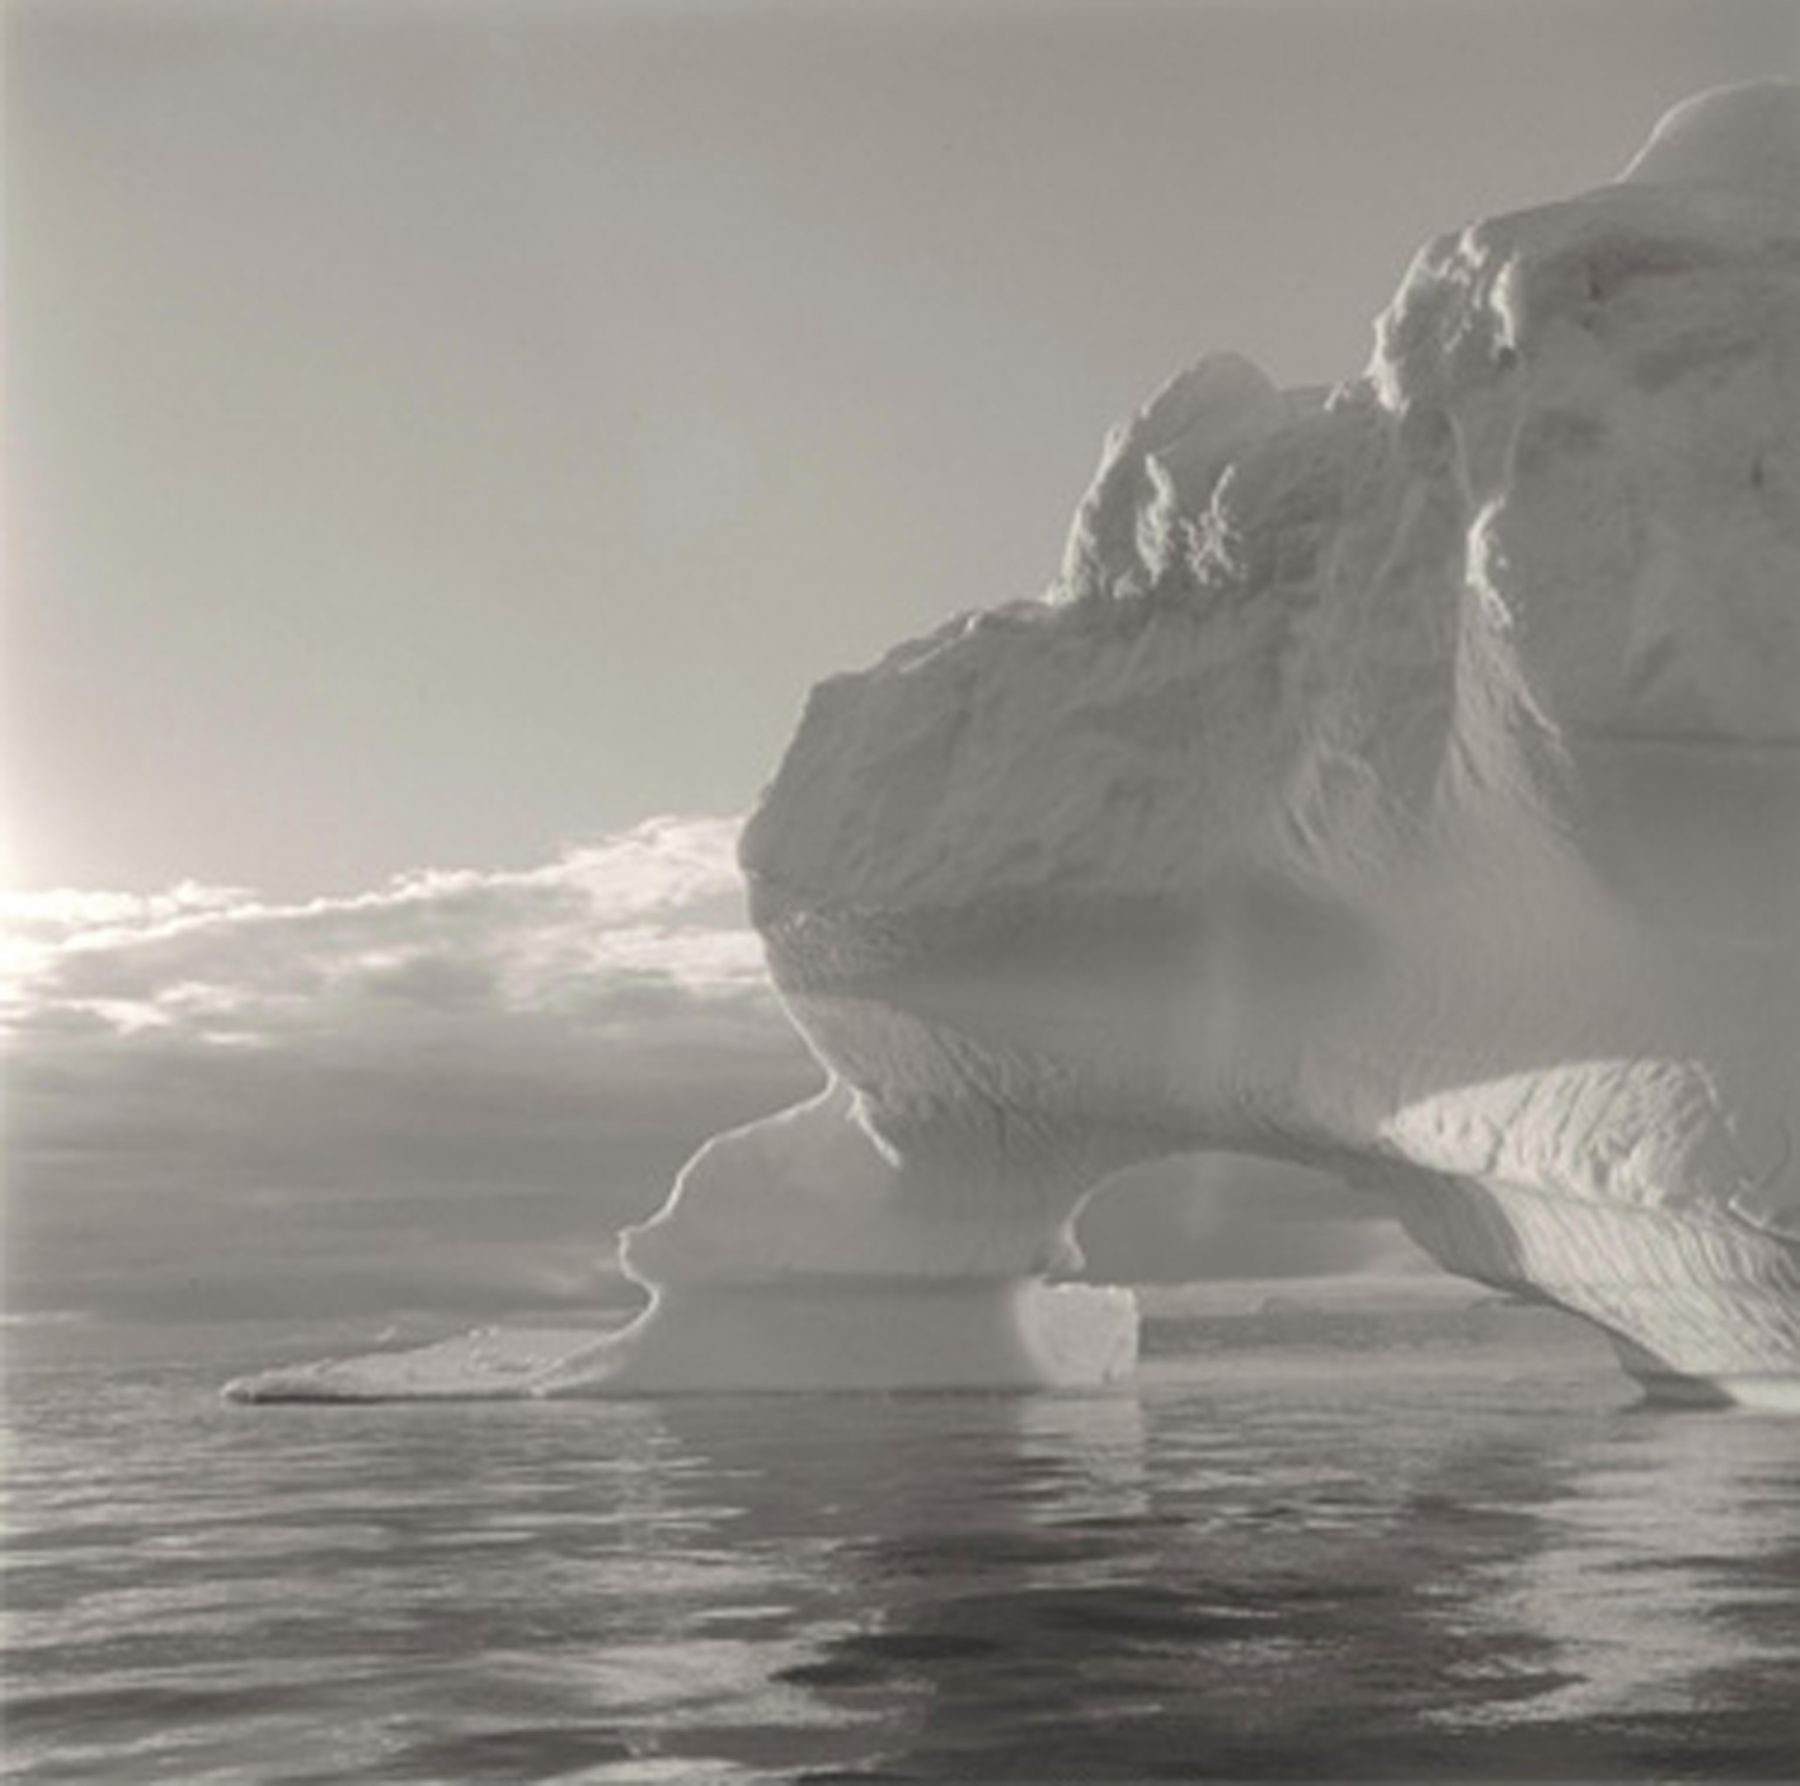 Lynn DavisIceberg 24, Disko Bay, Greenland, 2000Gelatin silver enlargement print40 x 40 inchesEdition of 10